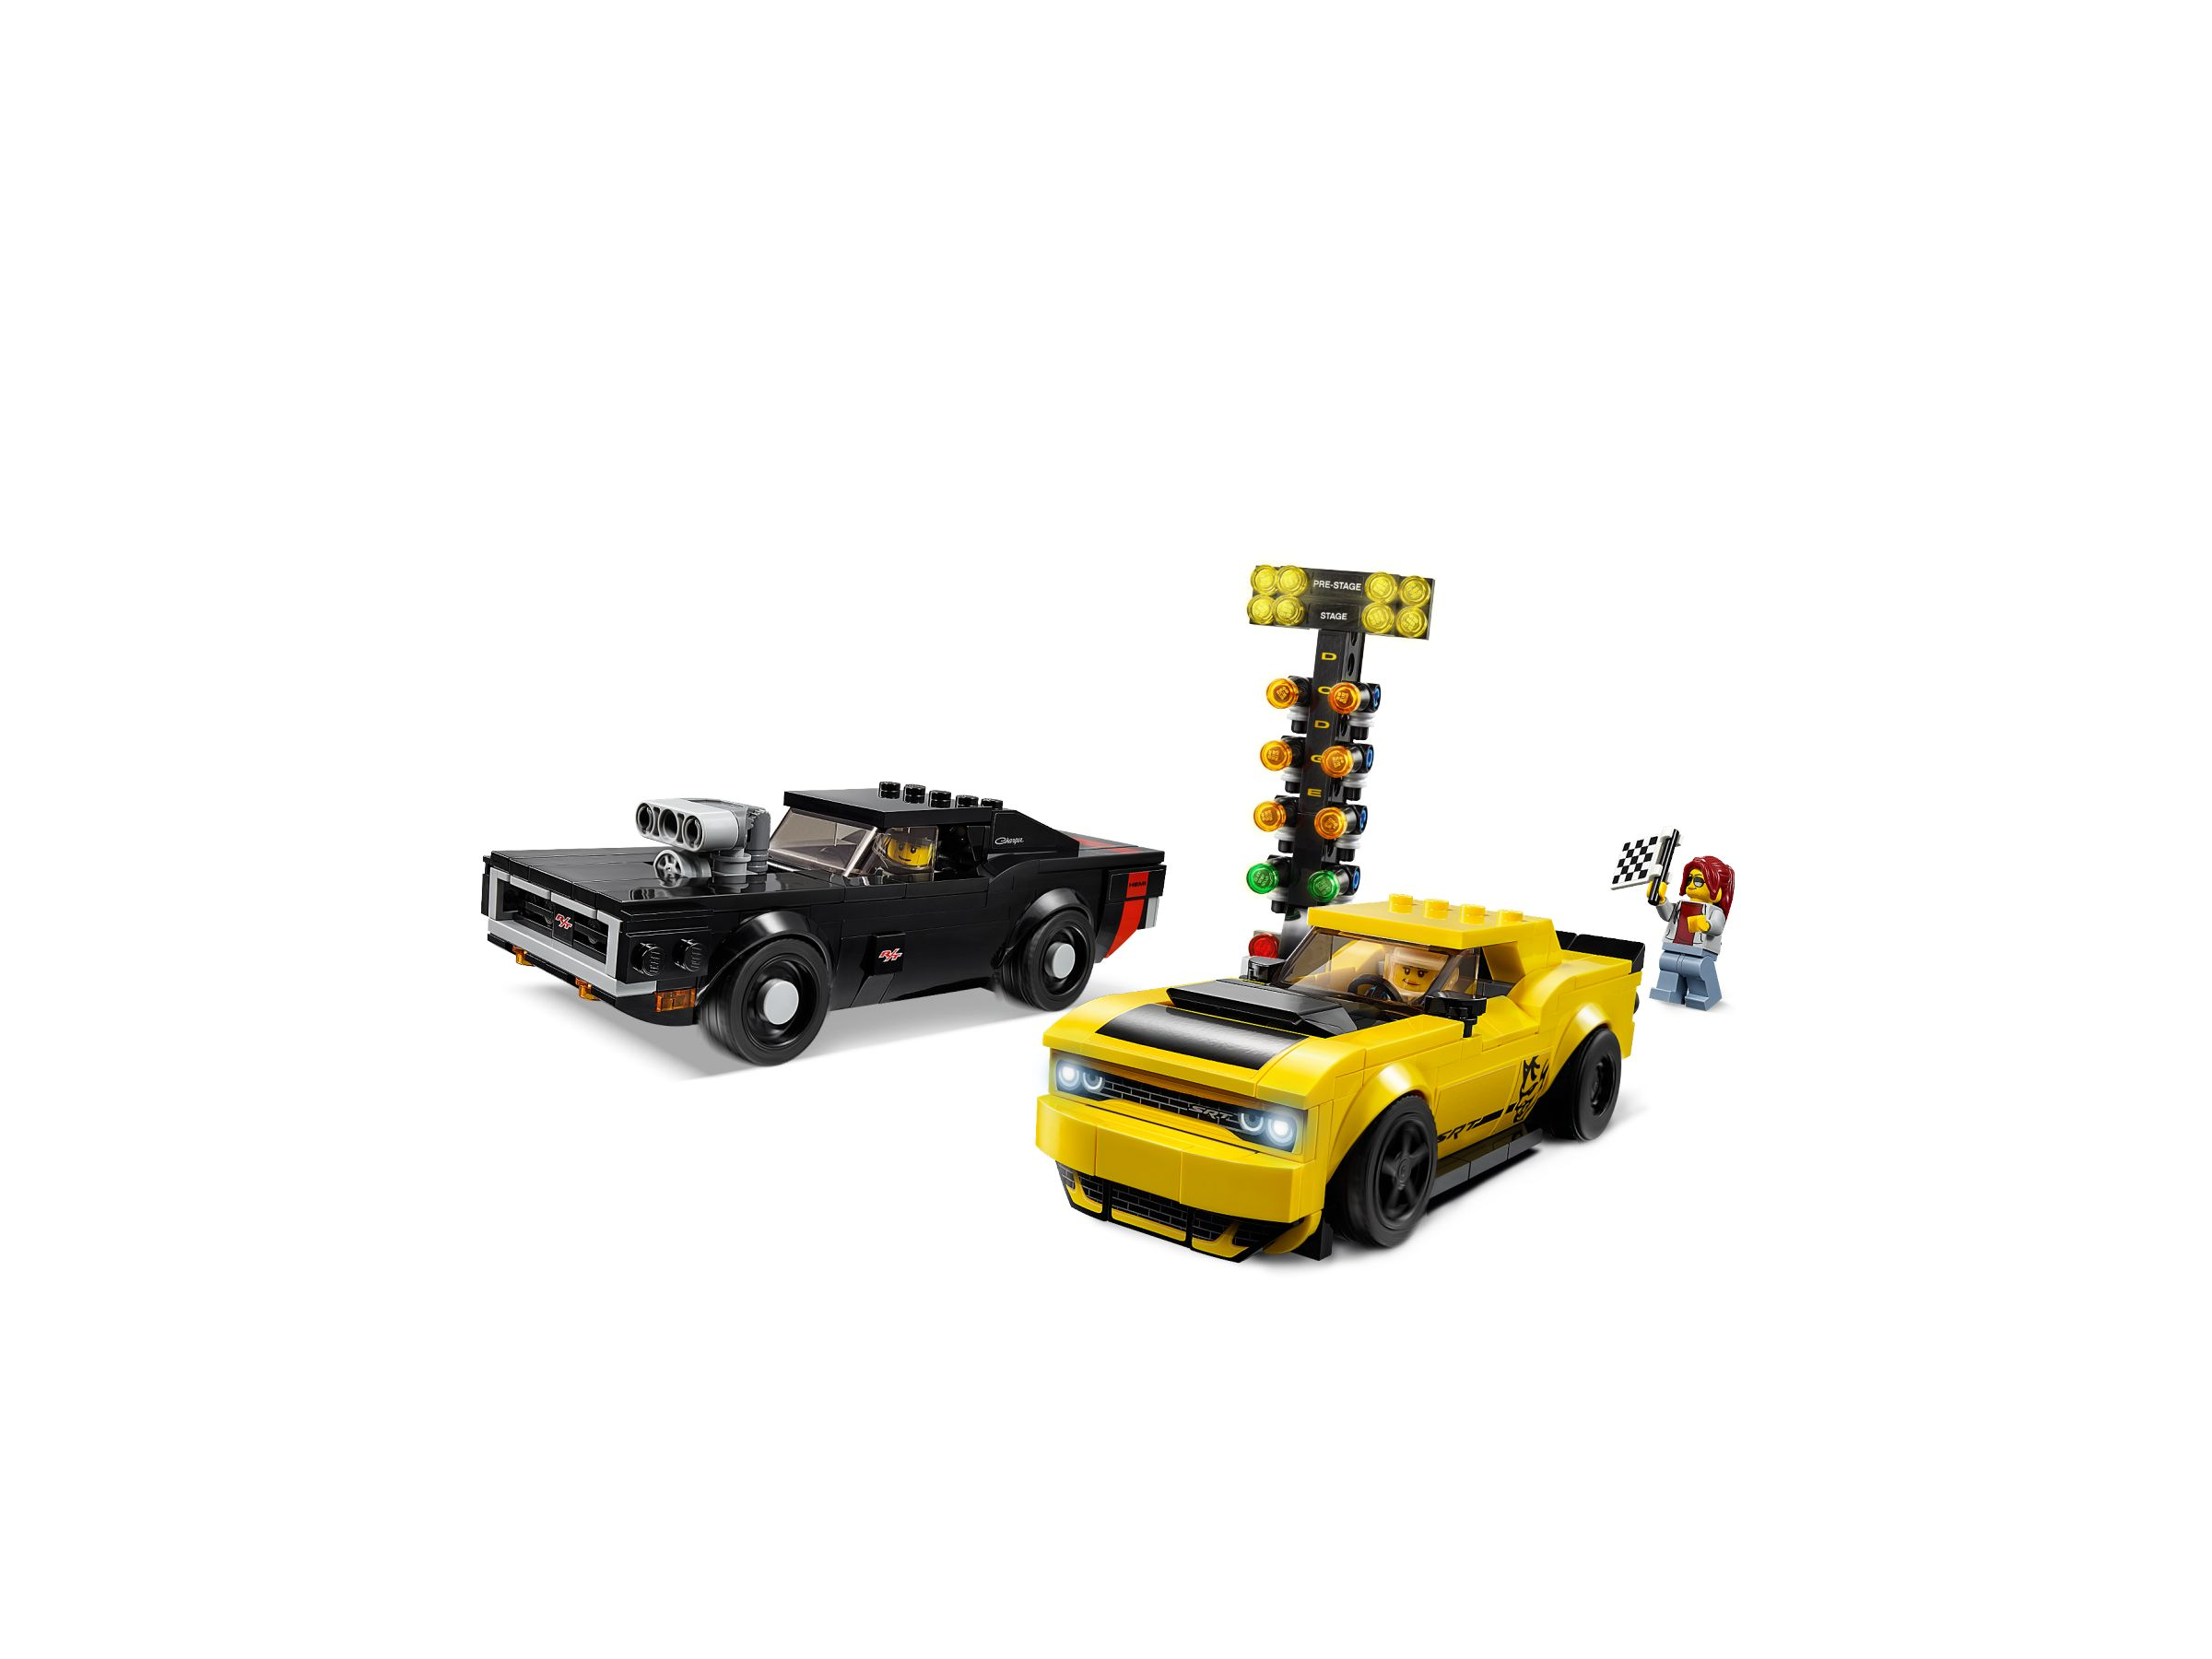 LEGO Speed Champions 75893 2018 Dodge Challenger SRT Demon und 1970 Dodge Charger R/T LEGO_75893_alt2.jpg